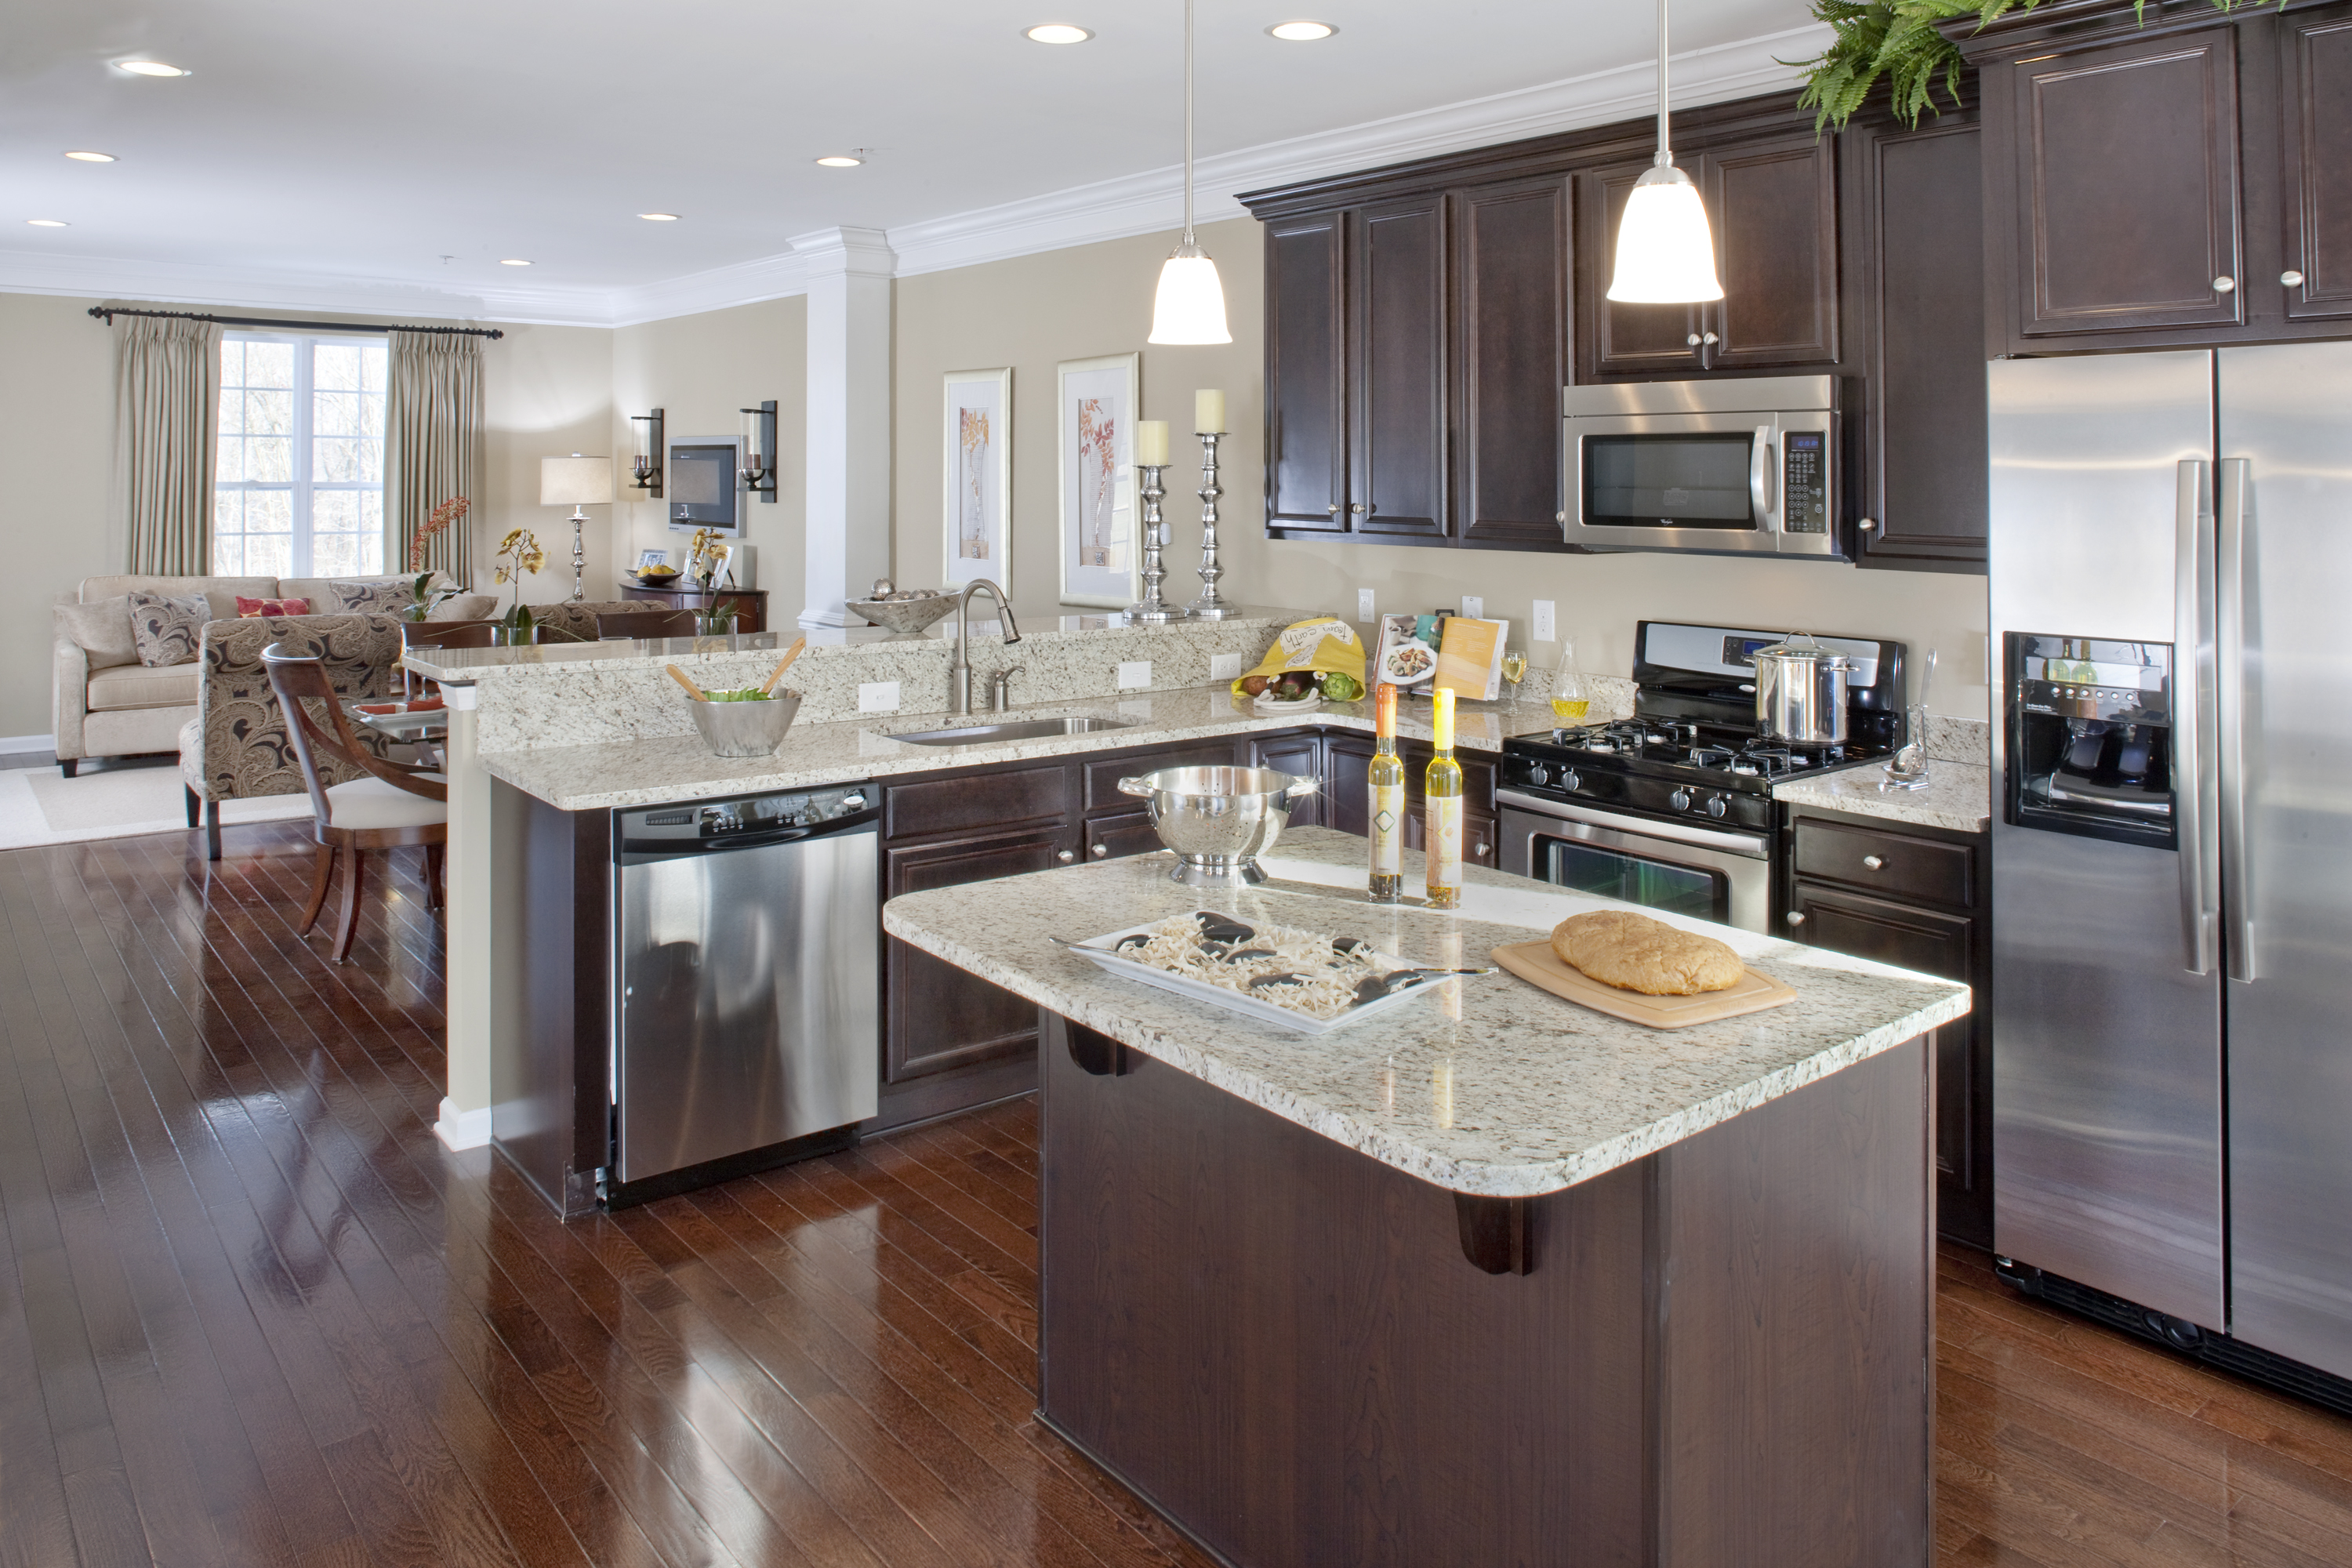 Townhomes in delaware darley green photo gallery for New model kitchen